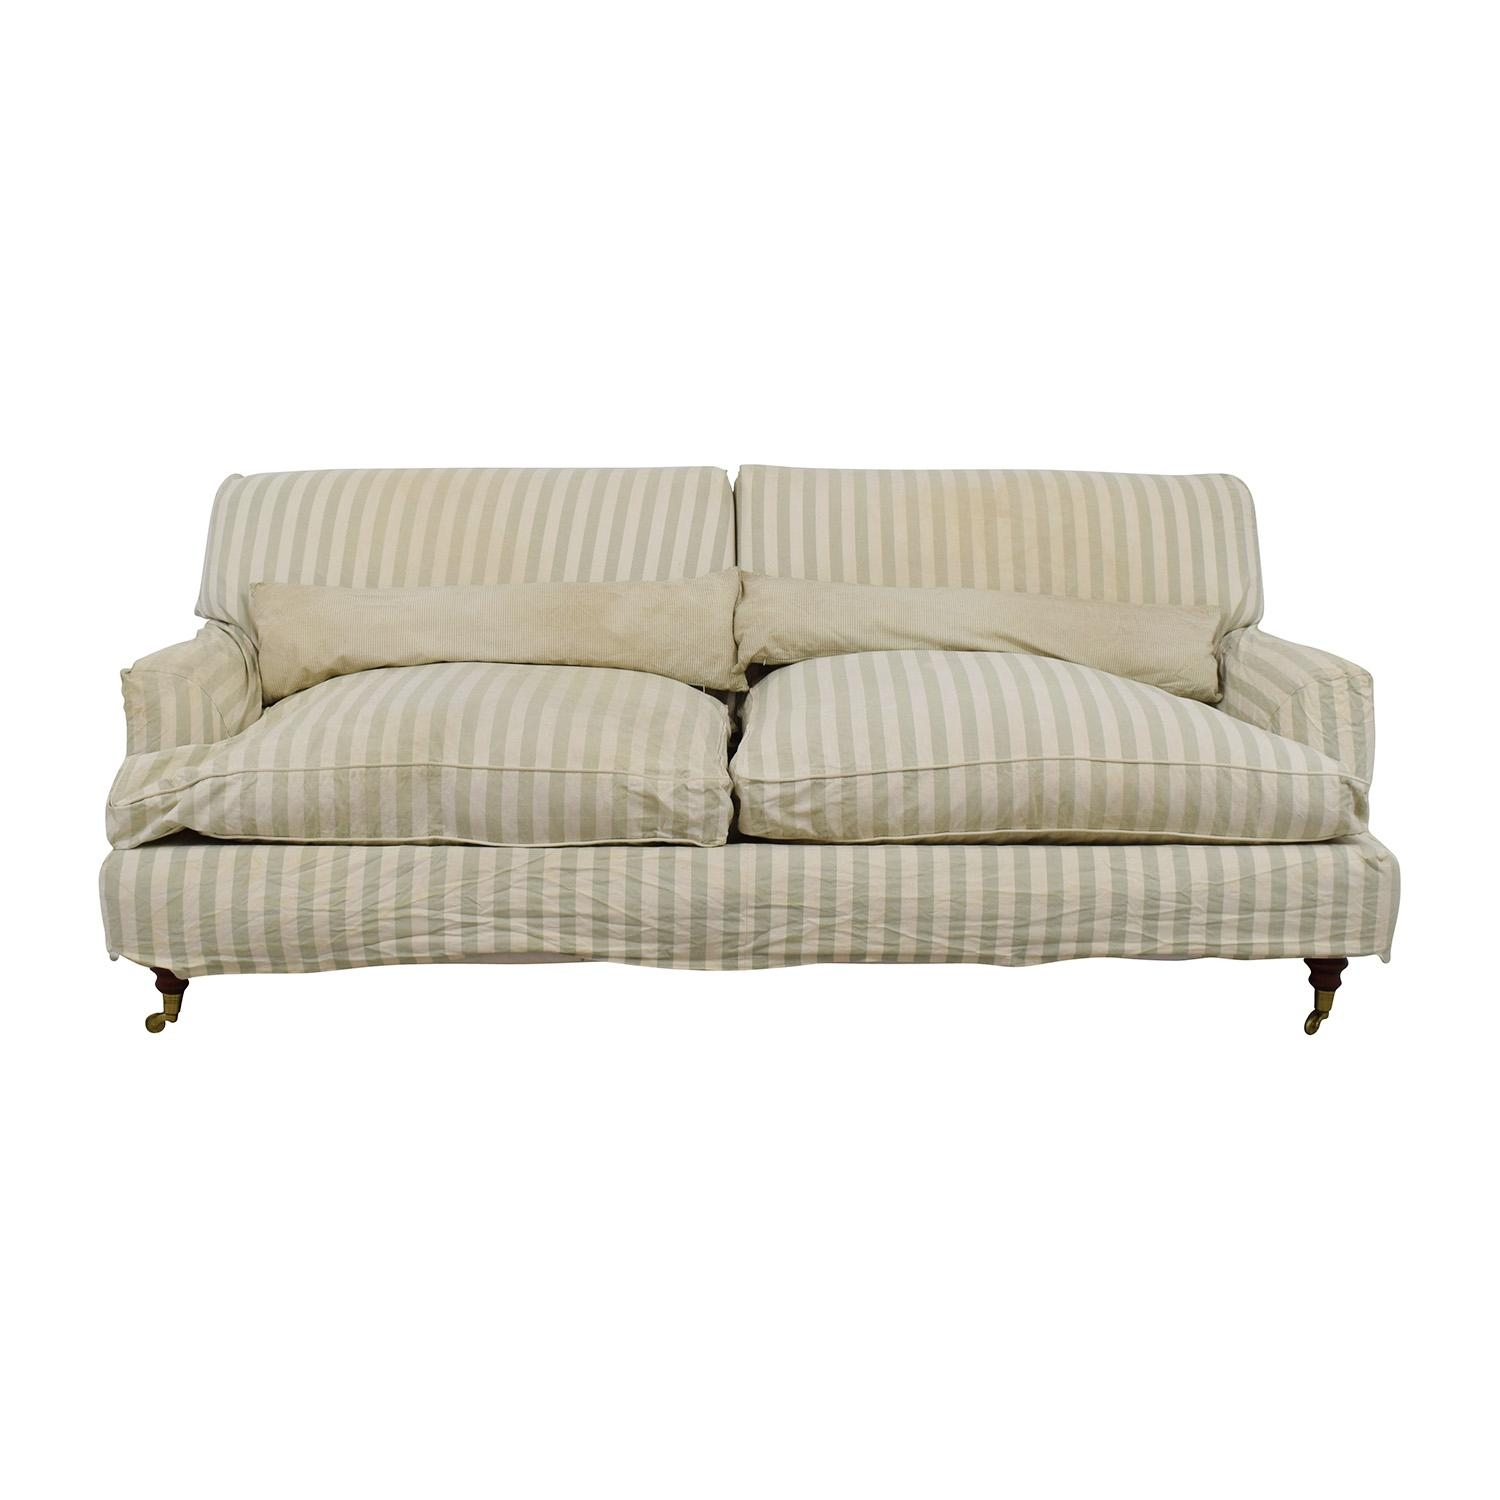 85% Off - Green And White Striped English Roll-Arm Sofa / Sofas within Classic English Sofas